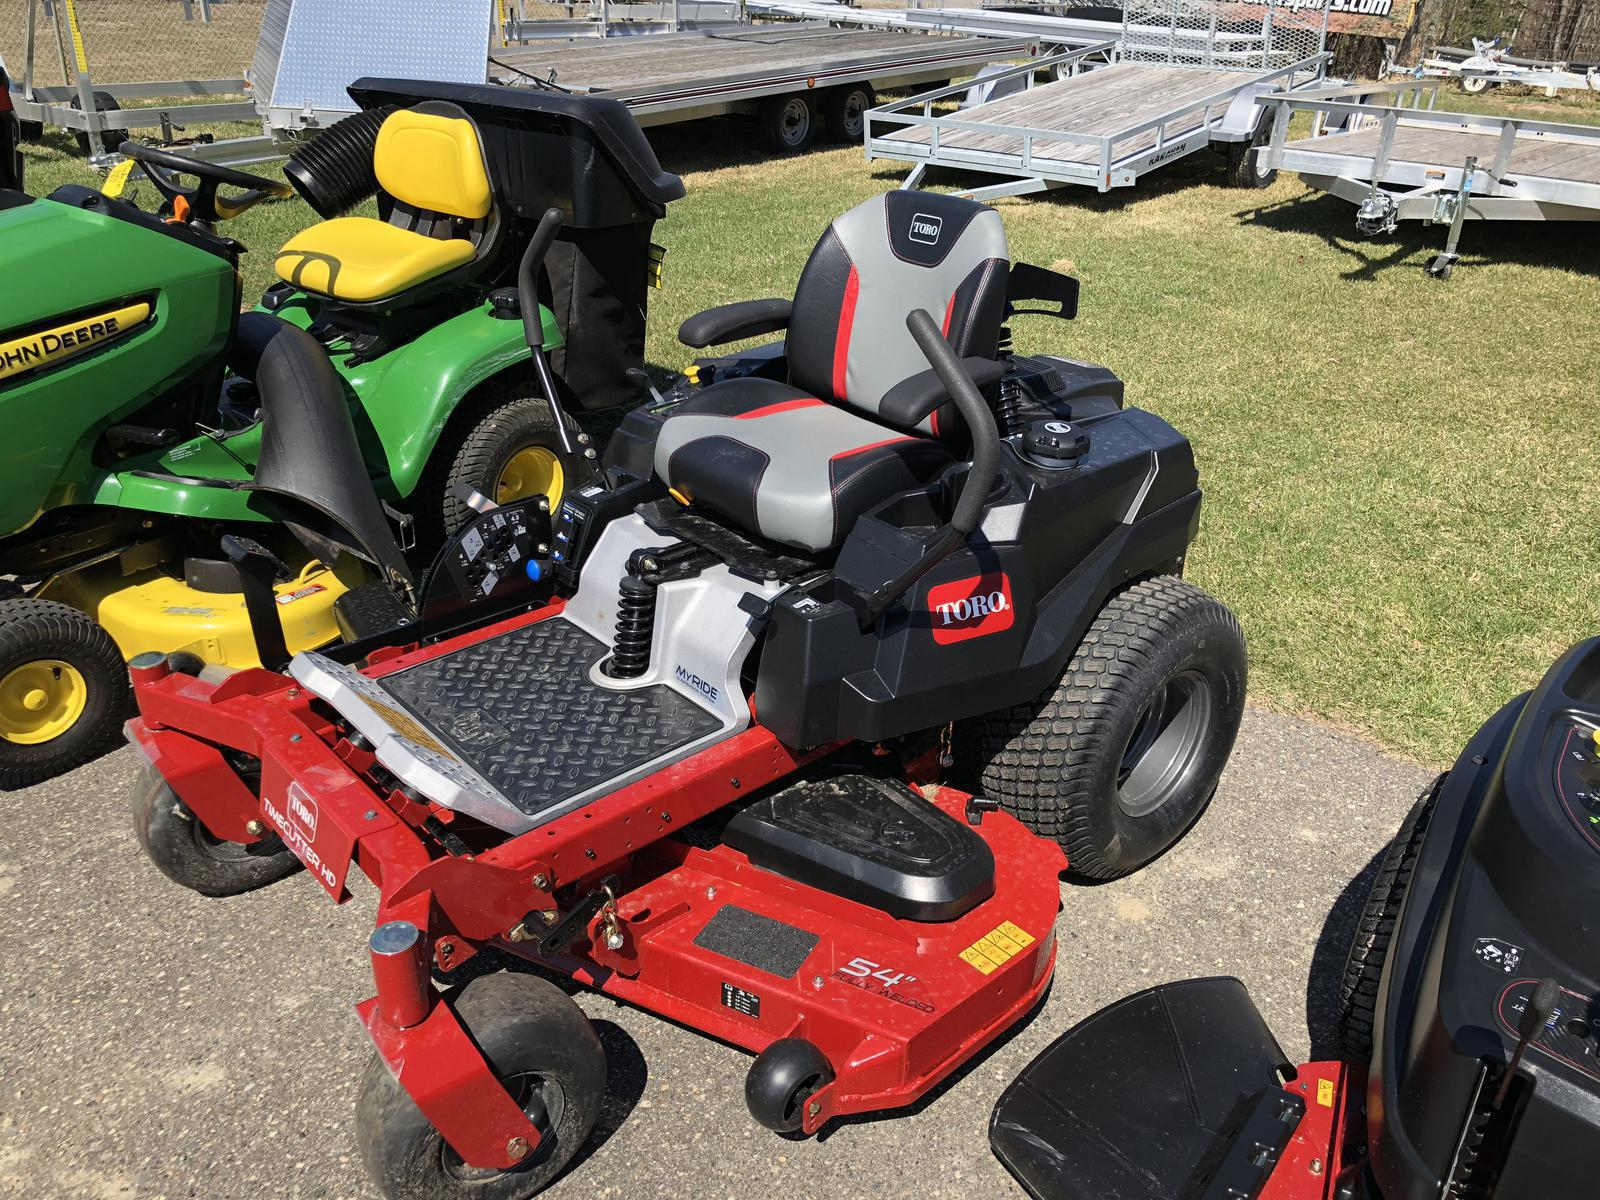 Inventory from Toro Lakes Area Powersports Walker, MN (218